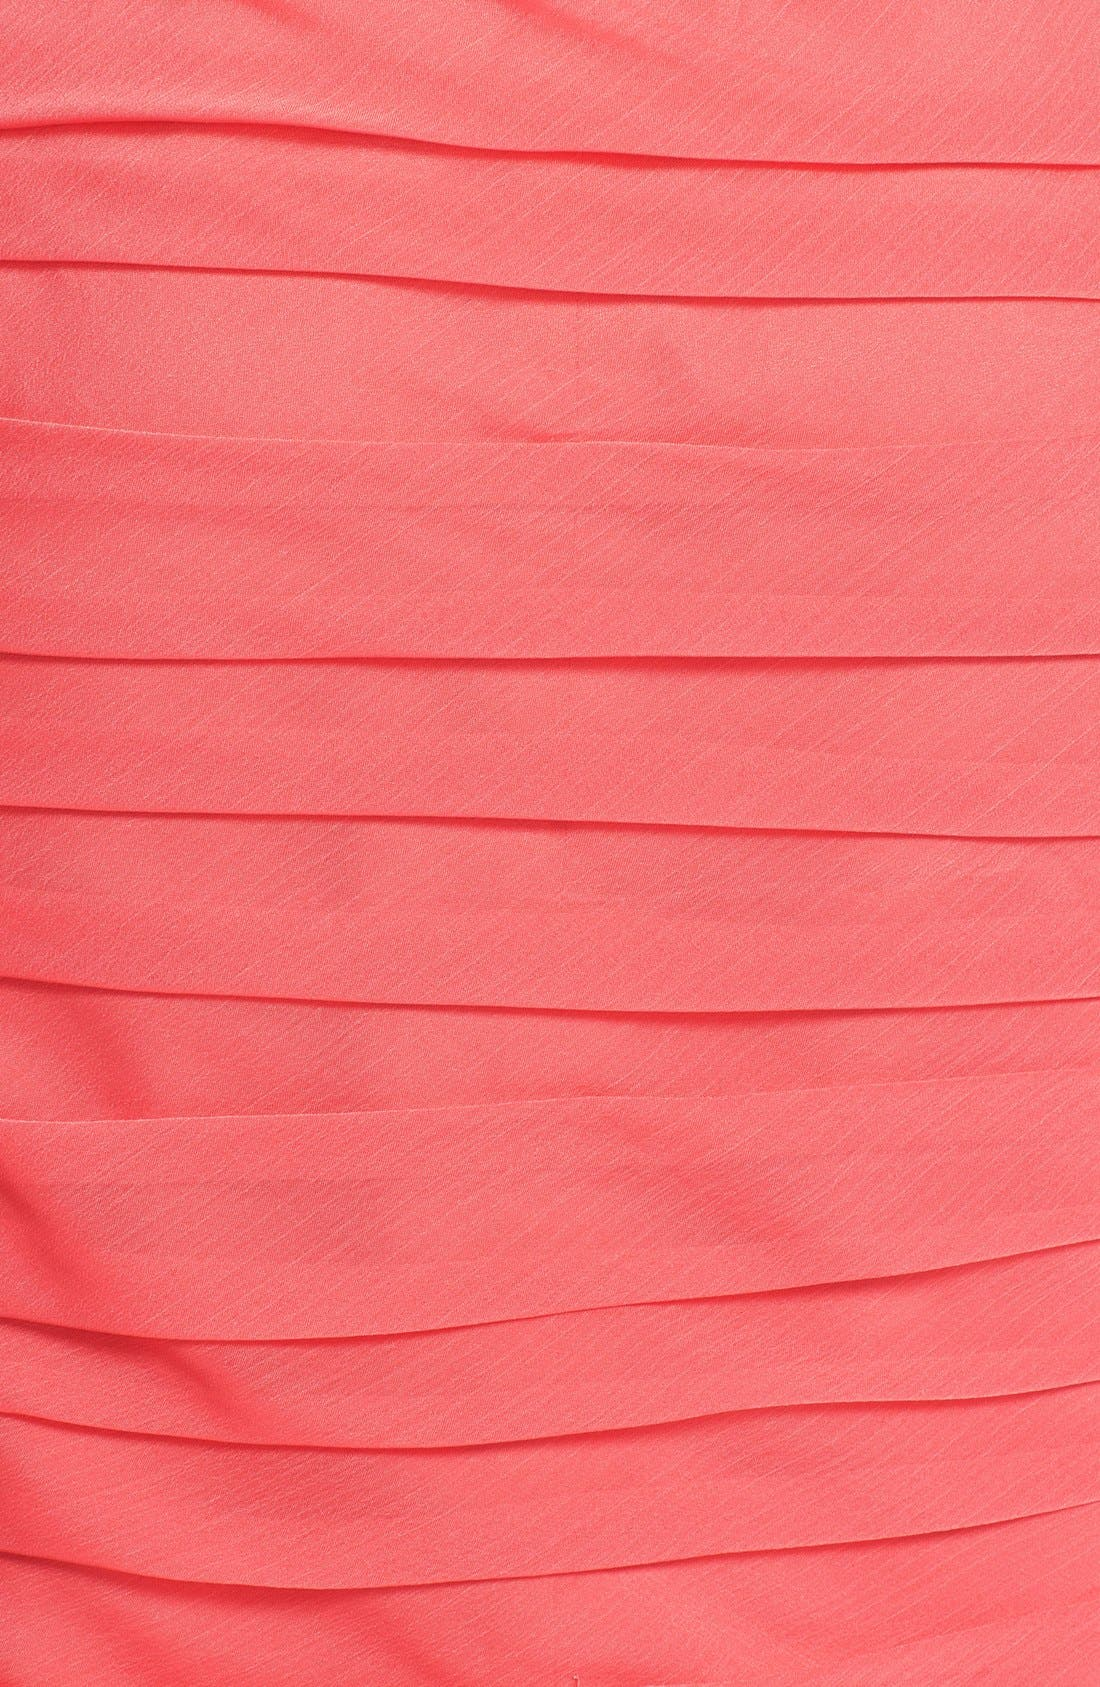 ,                             Ruched Strapless Cationic Chiffon Dress,                             Alternate thumbnail 77, color,                             805